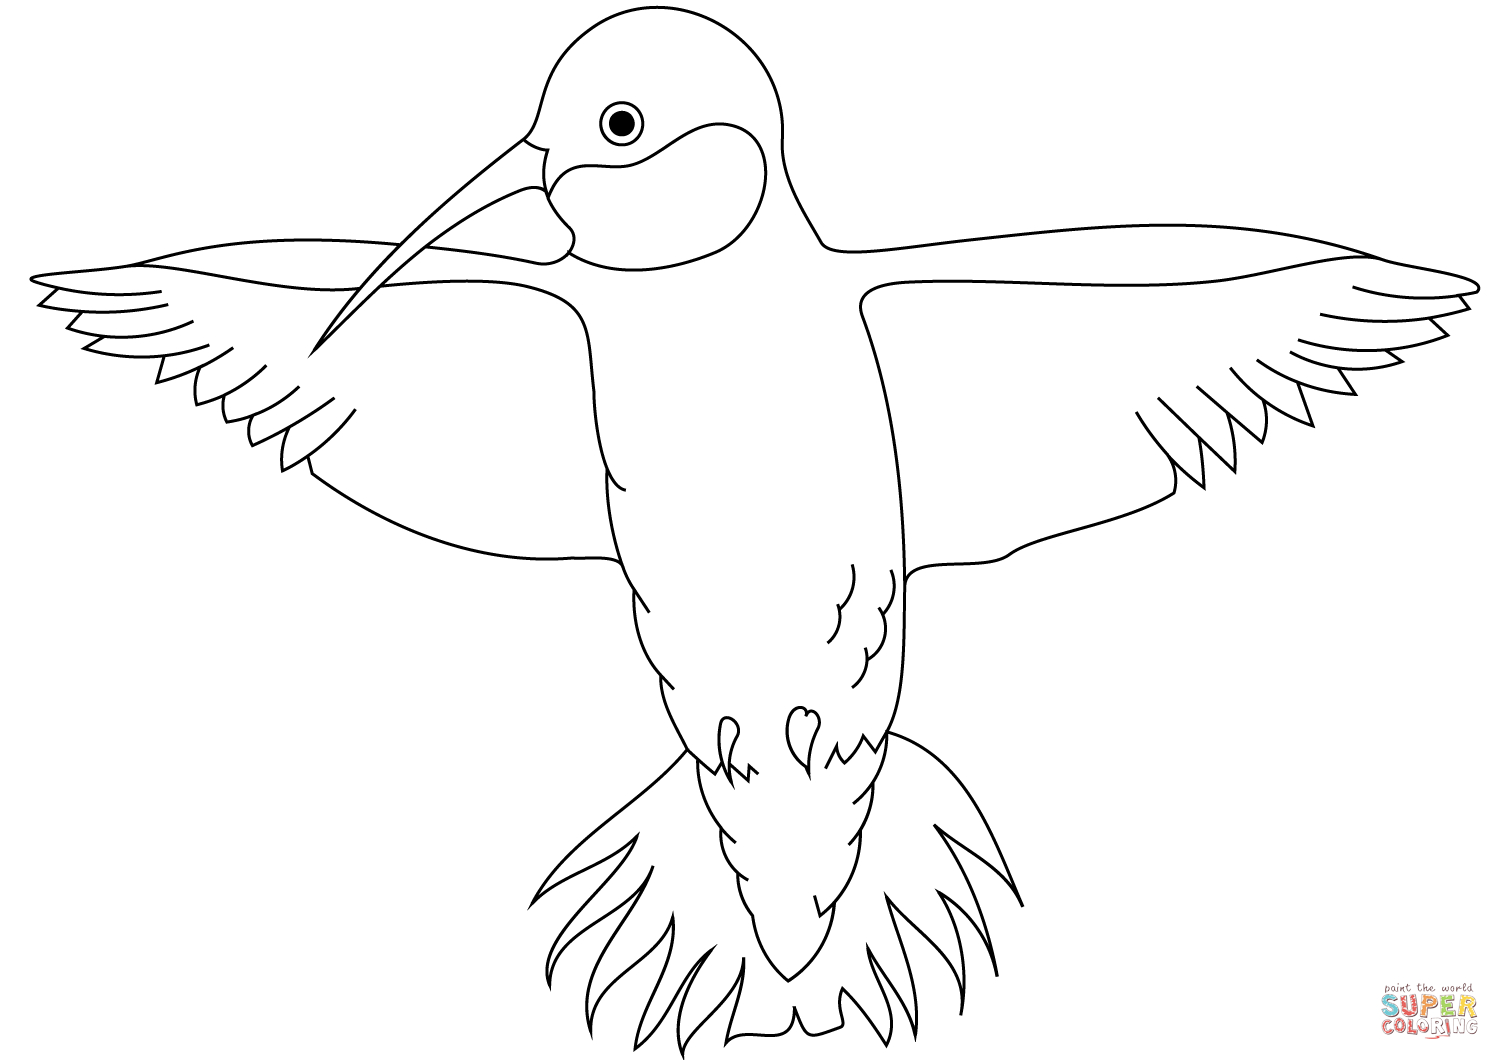 Hummingbird Coloring Page | Free Printable Coloring Pages - Free Printable Pictures Of Hummingbirds